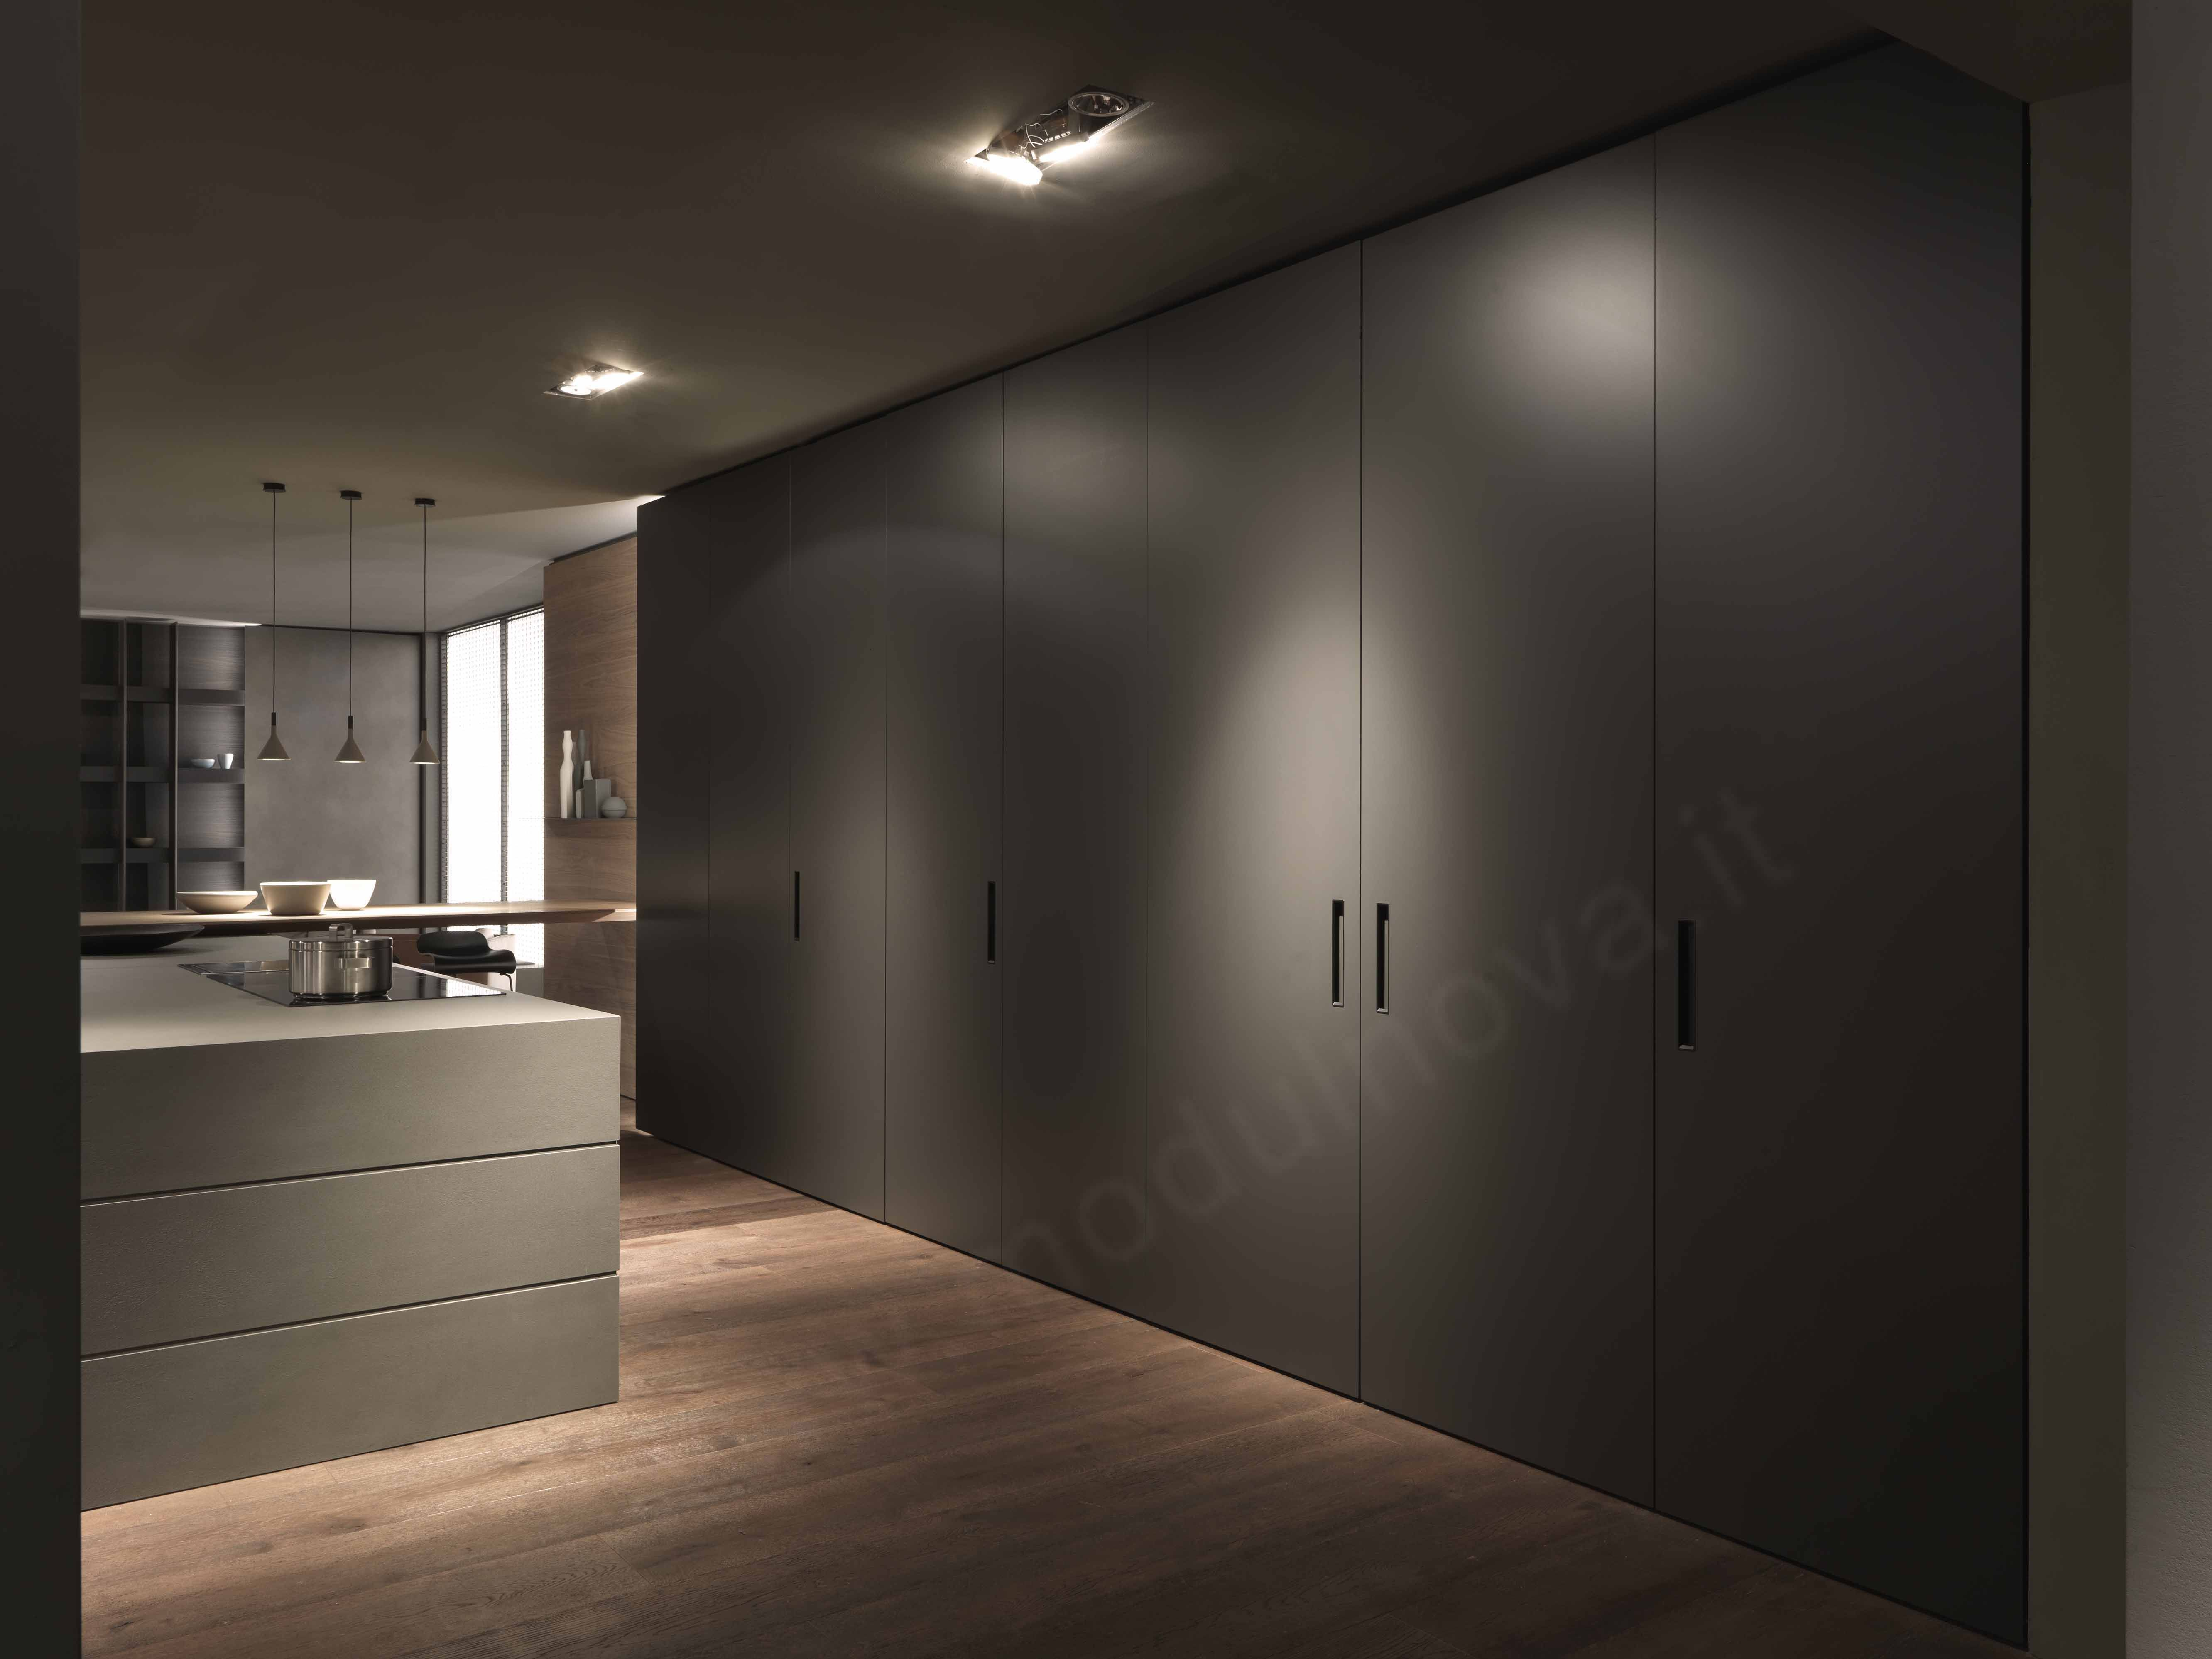 Tall Units Cabinets With Fully Retractable Doors Modern Kitchen Design Kitchen Inspiration Design Kitchen Cabinets And Countertops